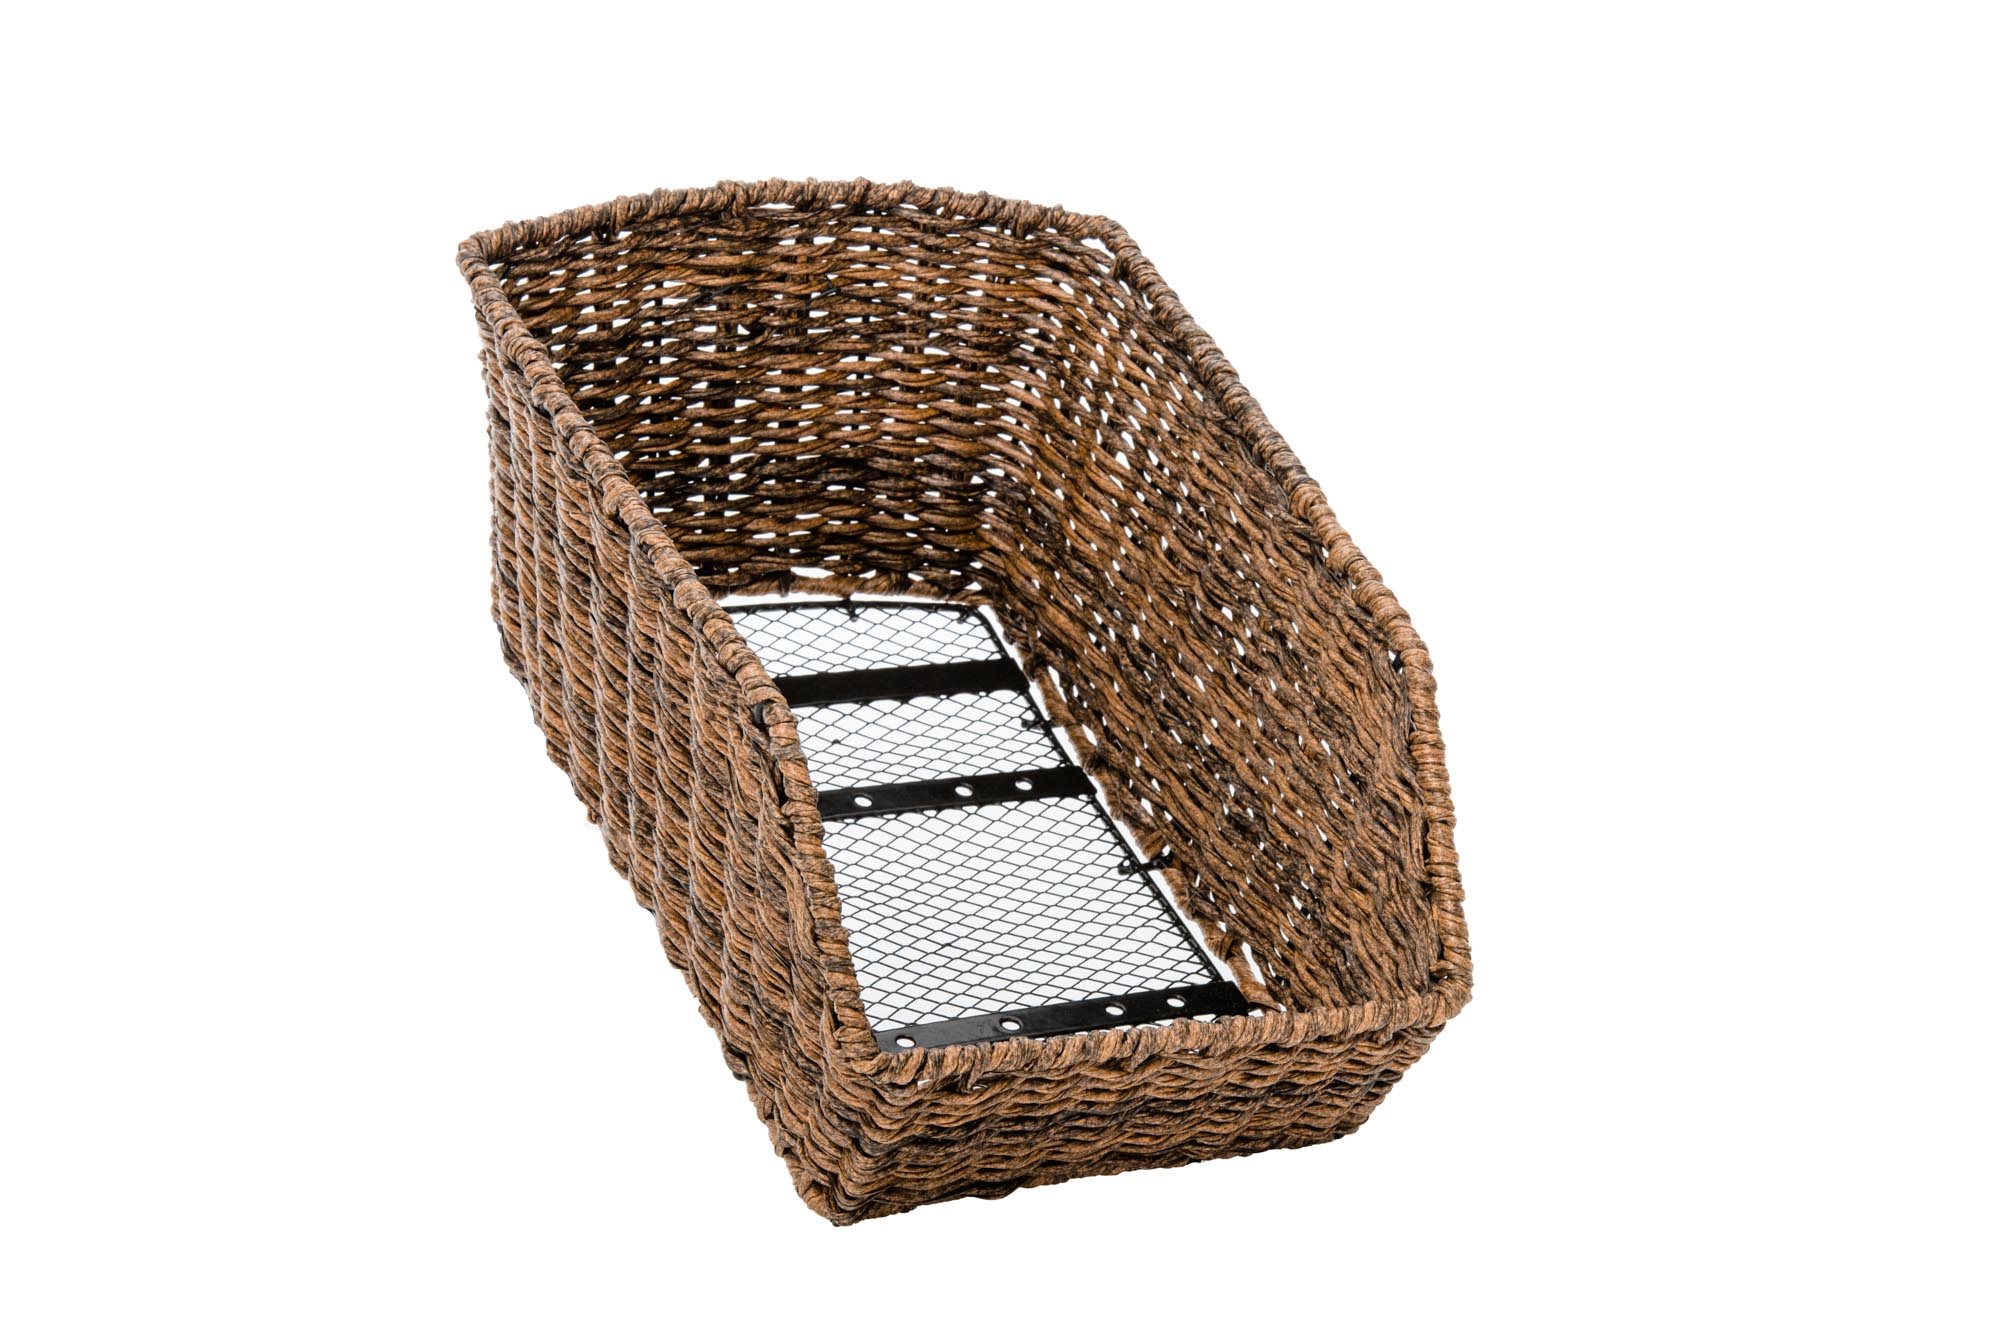 The Dutch Rear Basket – Dark Brown